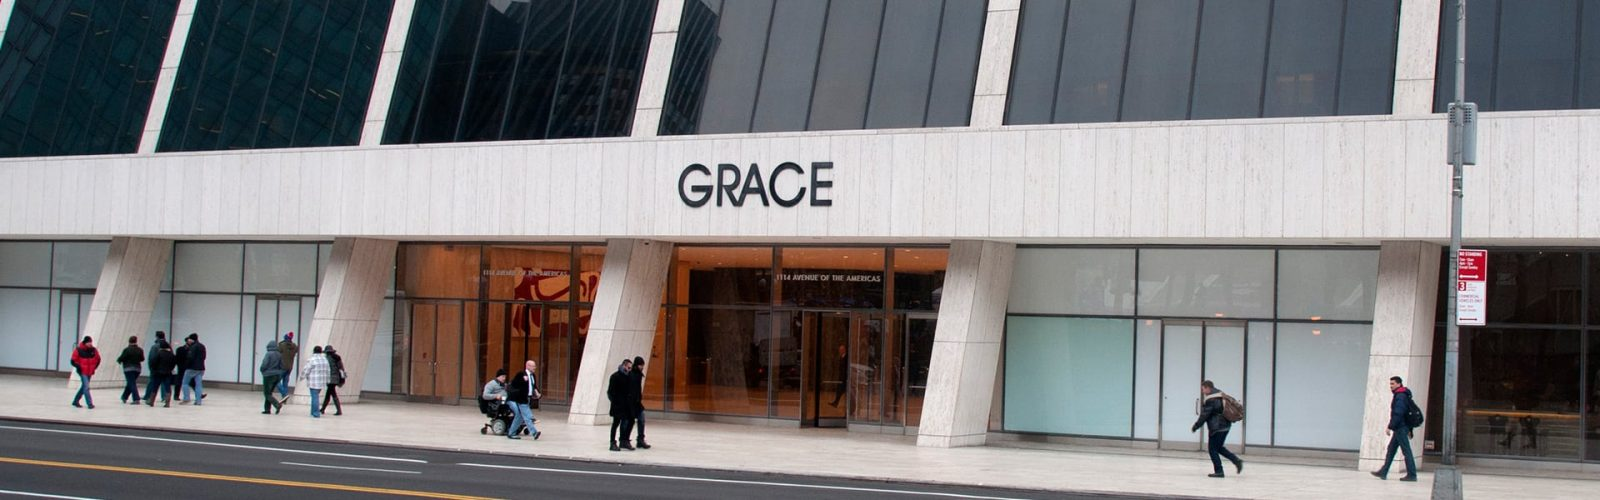 Grace building corporate event host